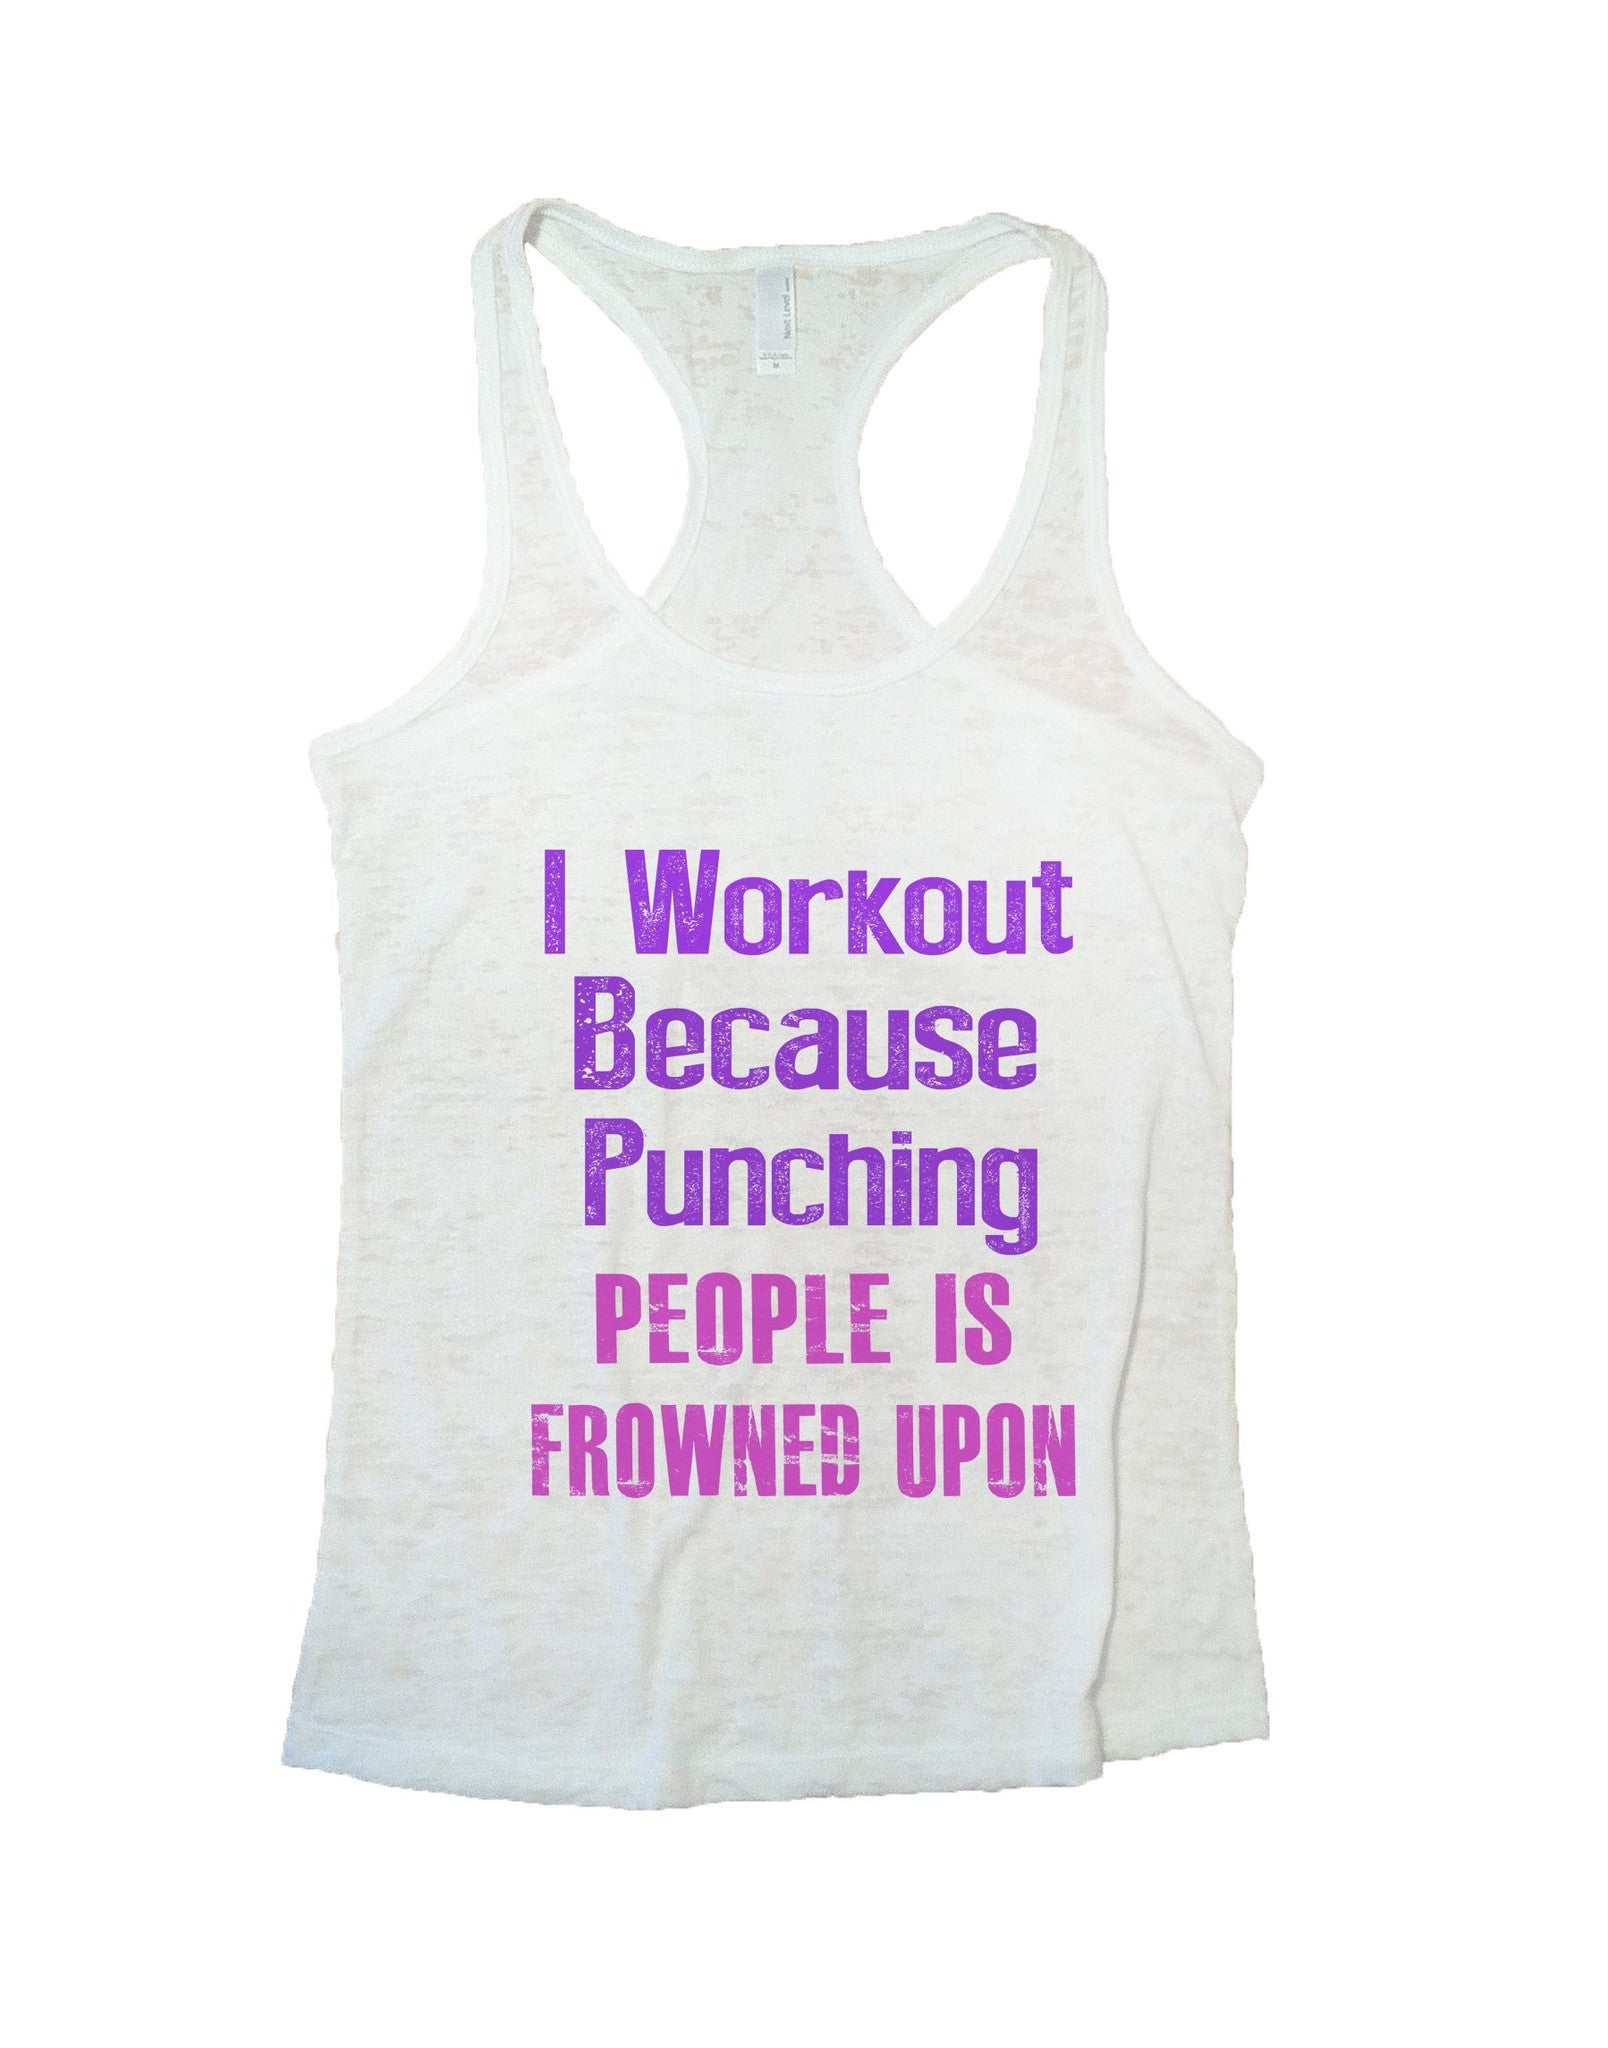 I Workout Because Punching People Is Frowned Upon Burnout Tank Top By BurnoutTankTops.com - 681 - Funny Shirts Tank Tops Burnouts and Triblends  - 5